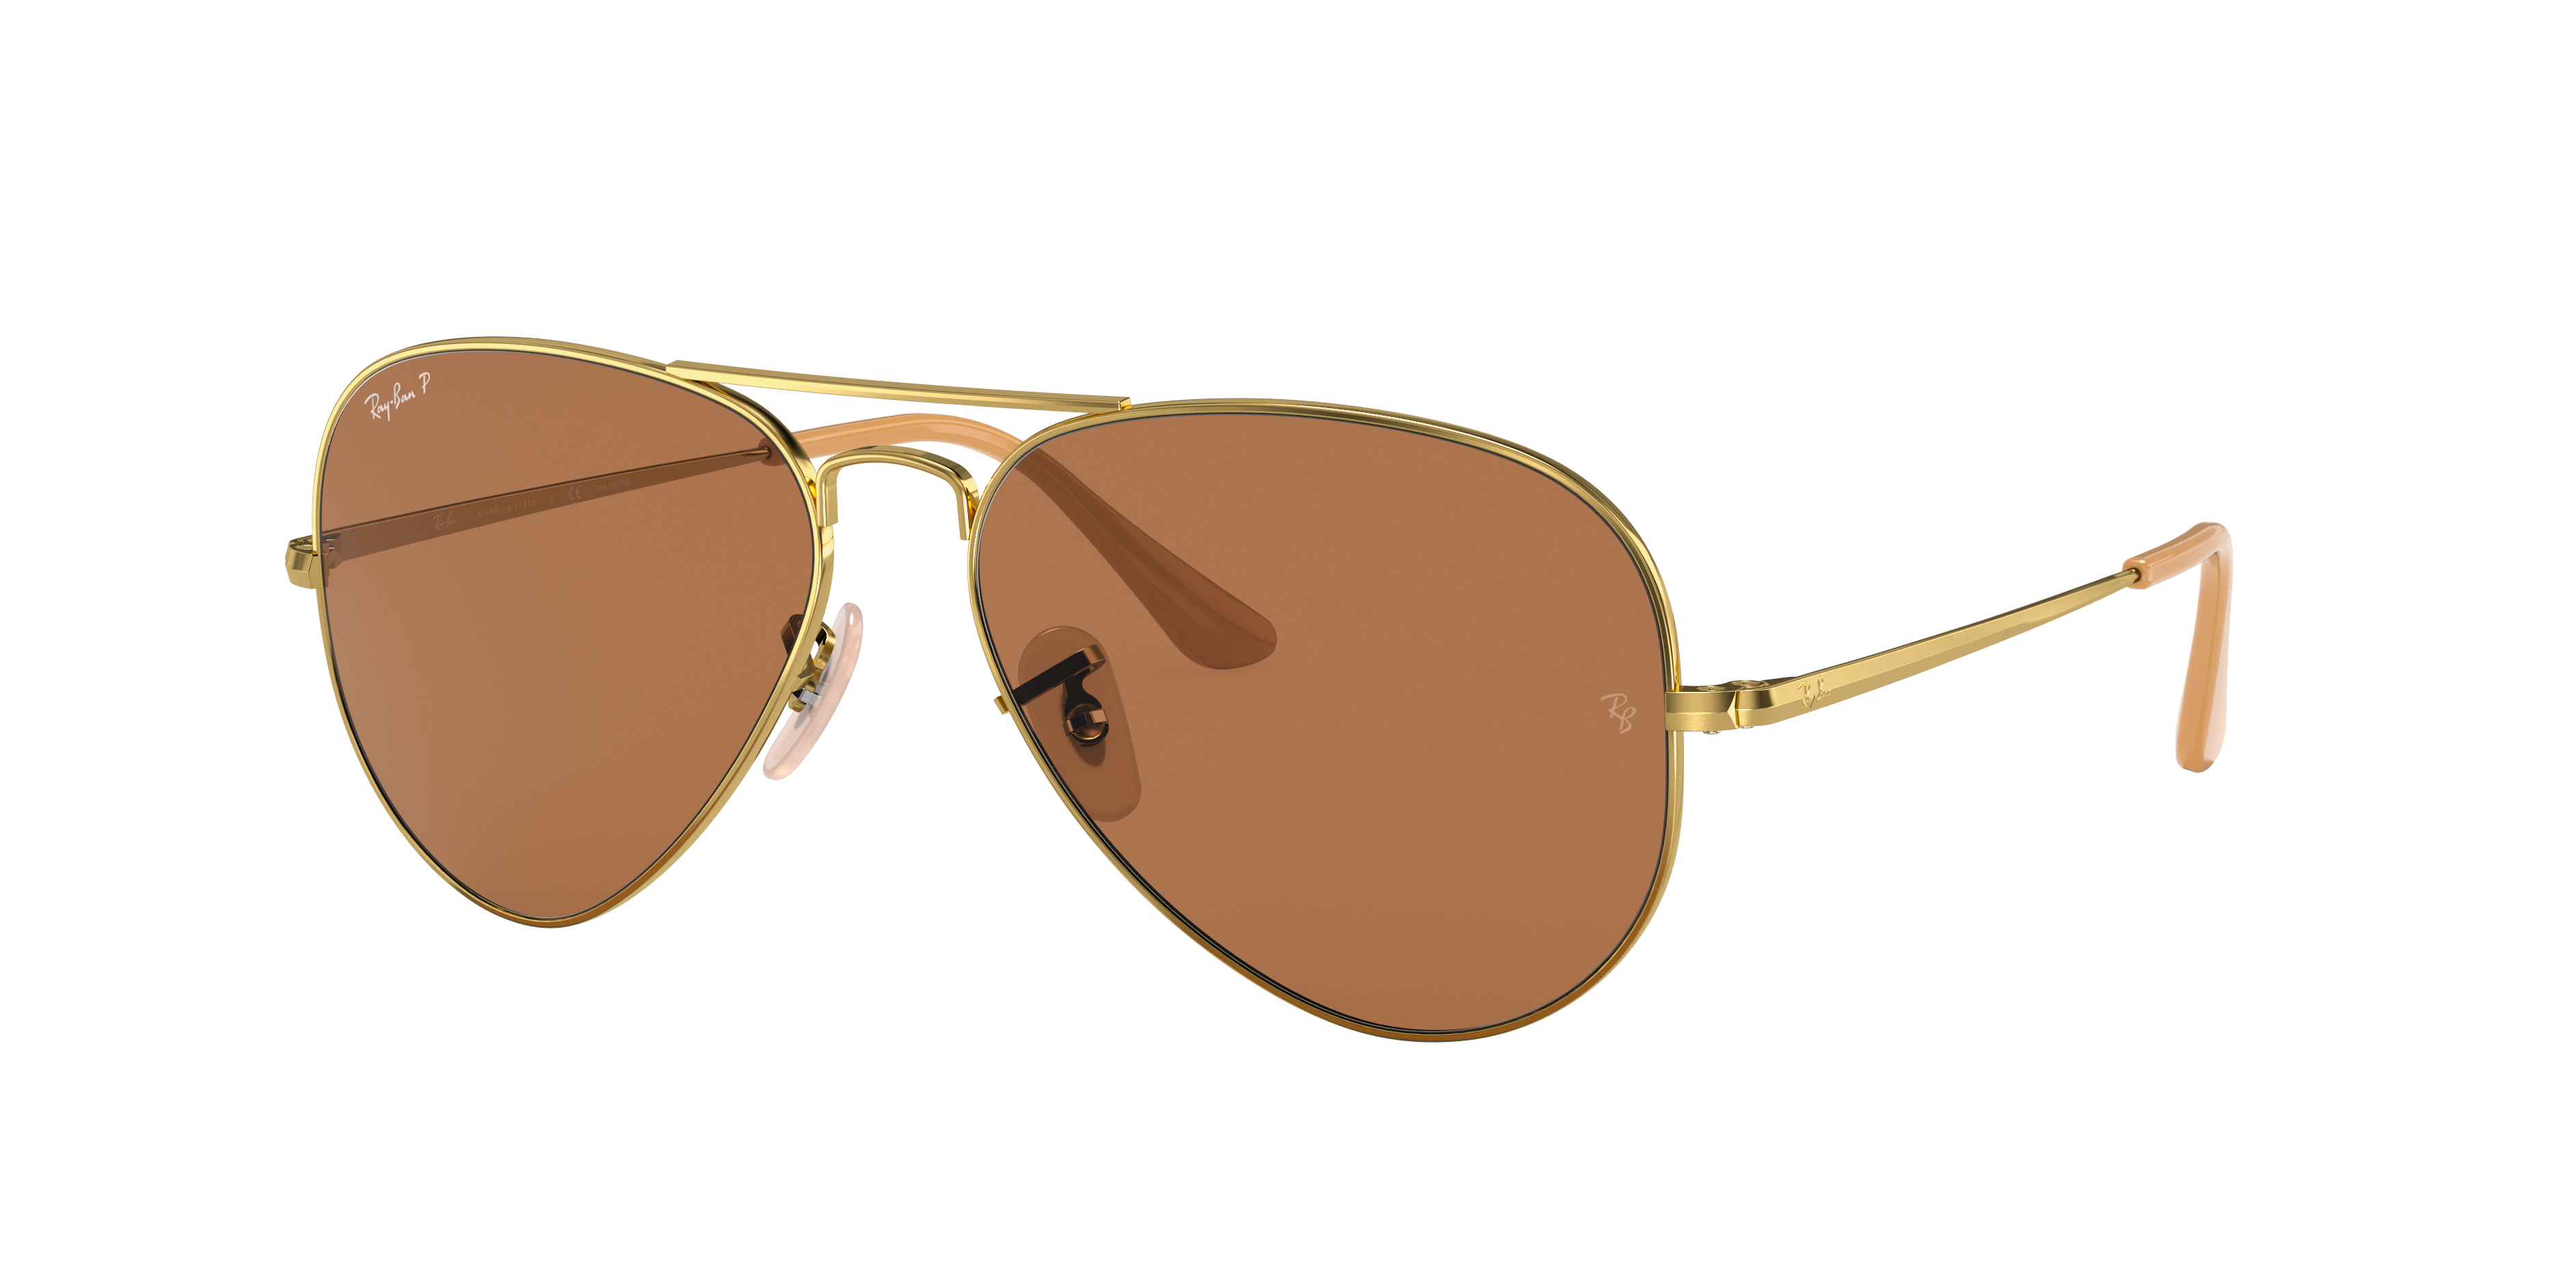 Ray-Ban Rb3689 Gold, Polarized Brown Lenses - RB3689